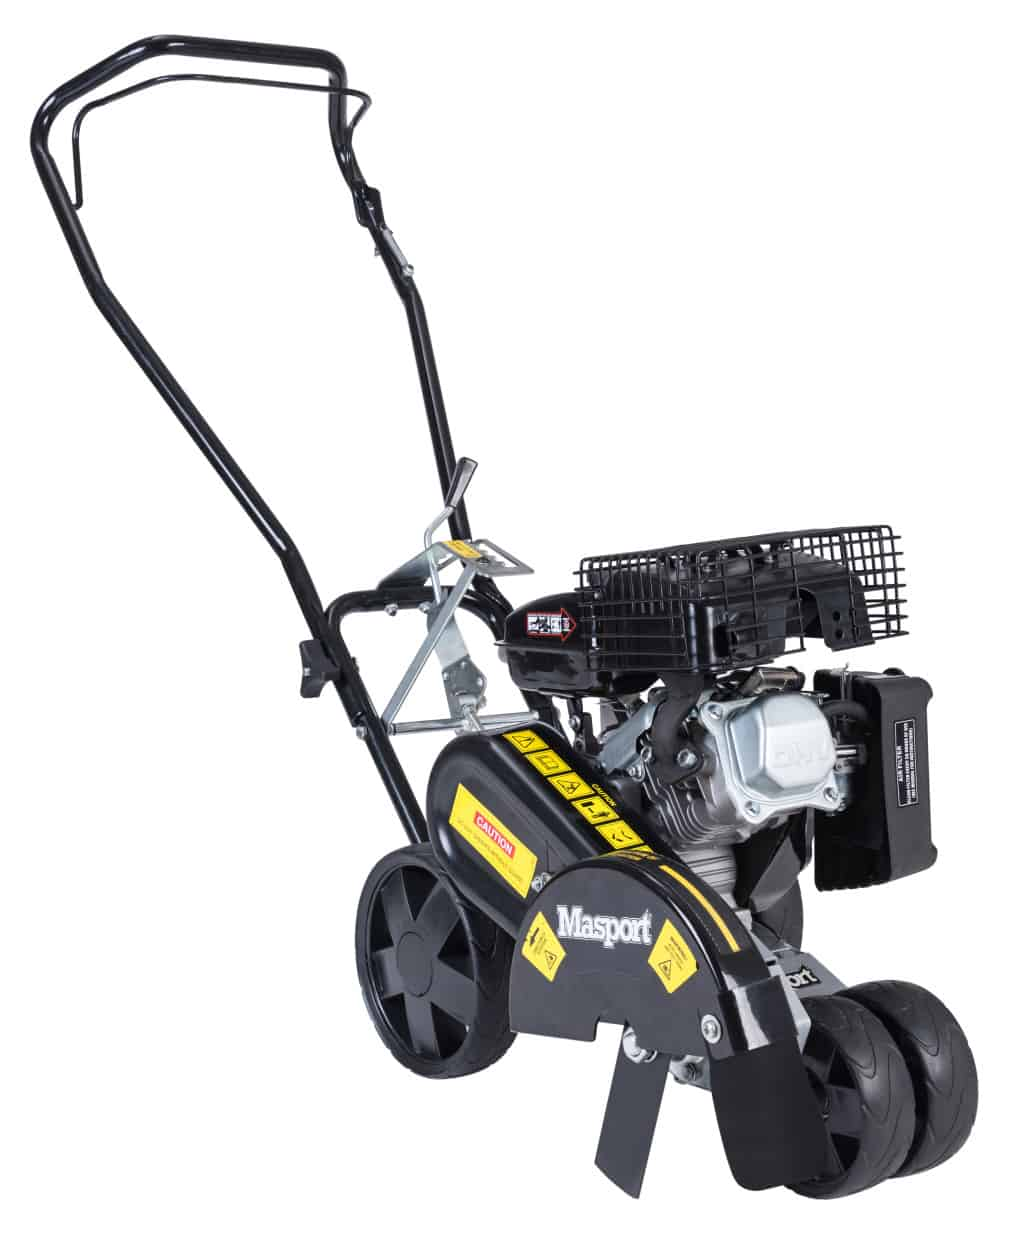 Lawn Edger for sale in Perth Masport Petrol Edger